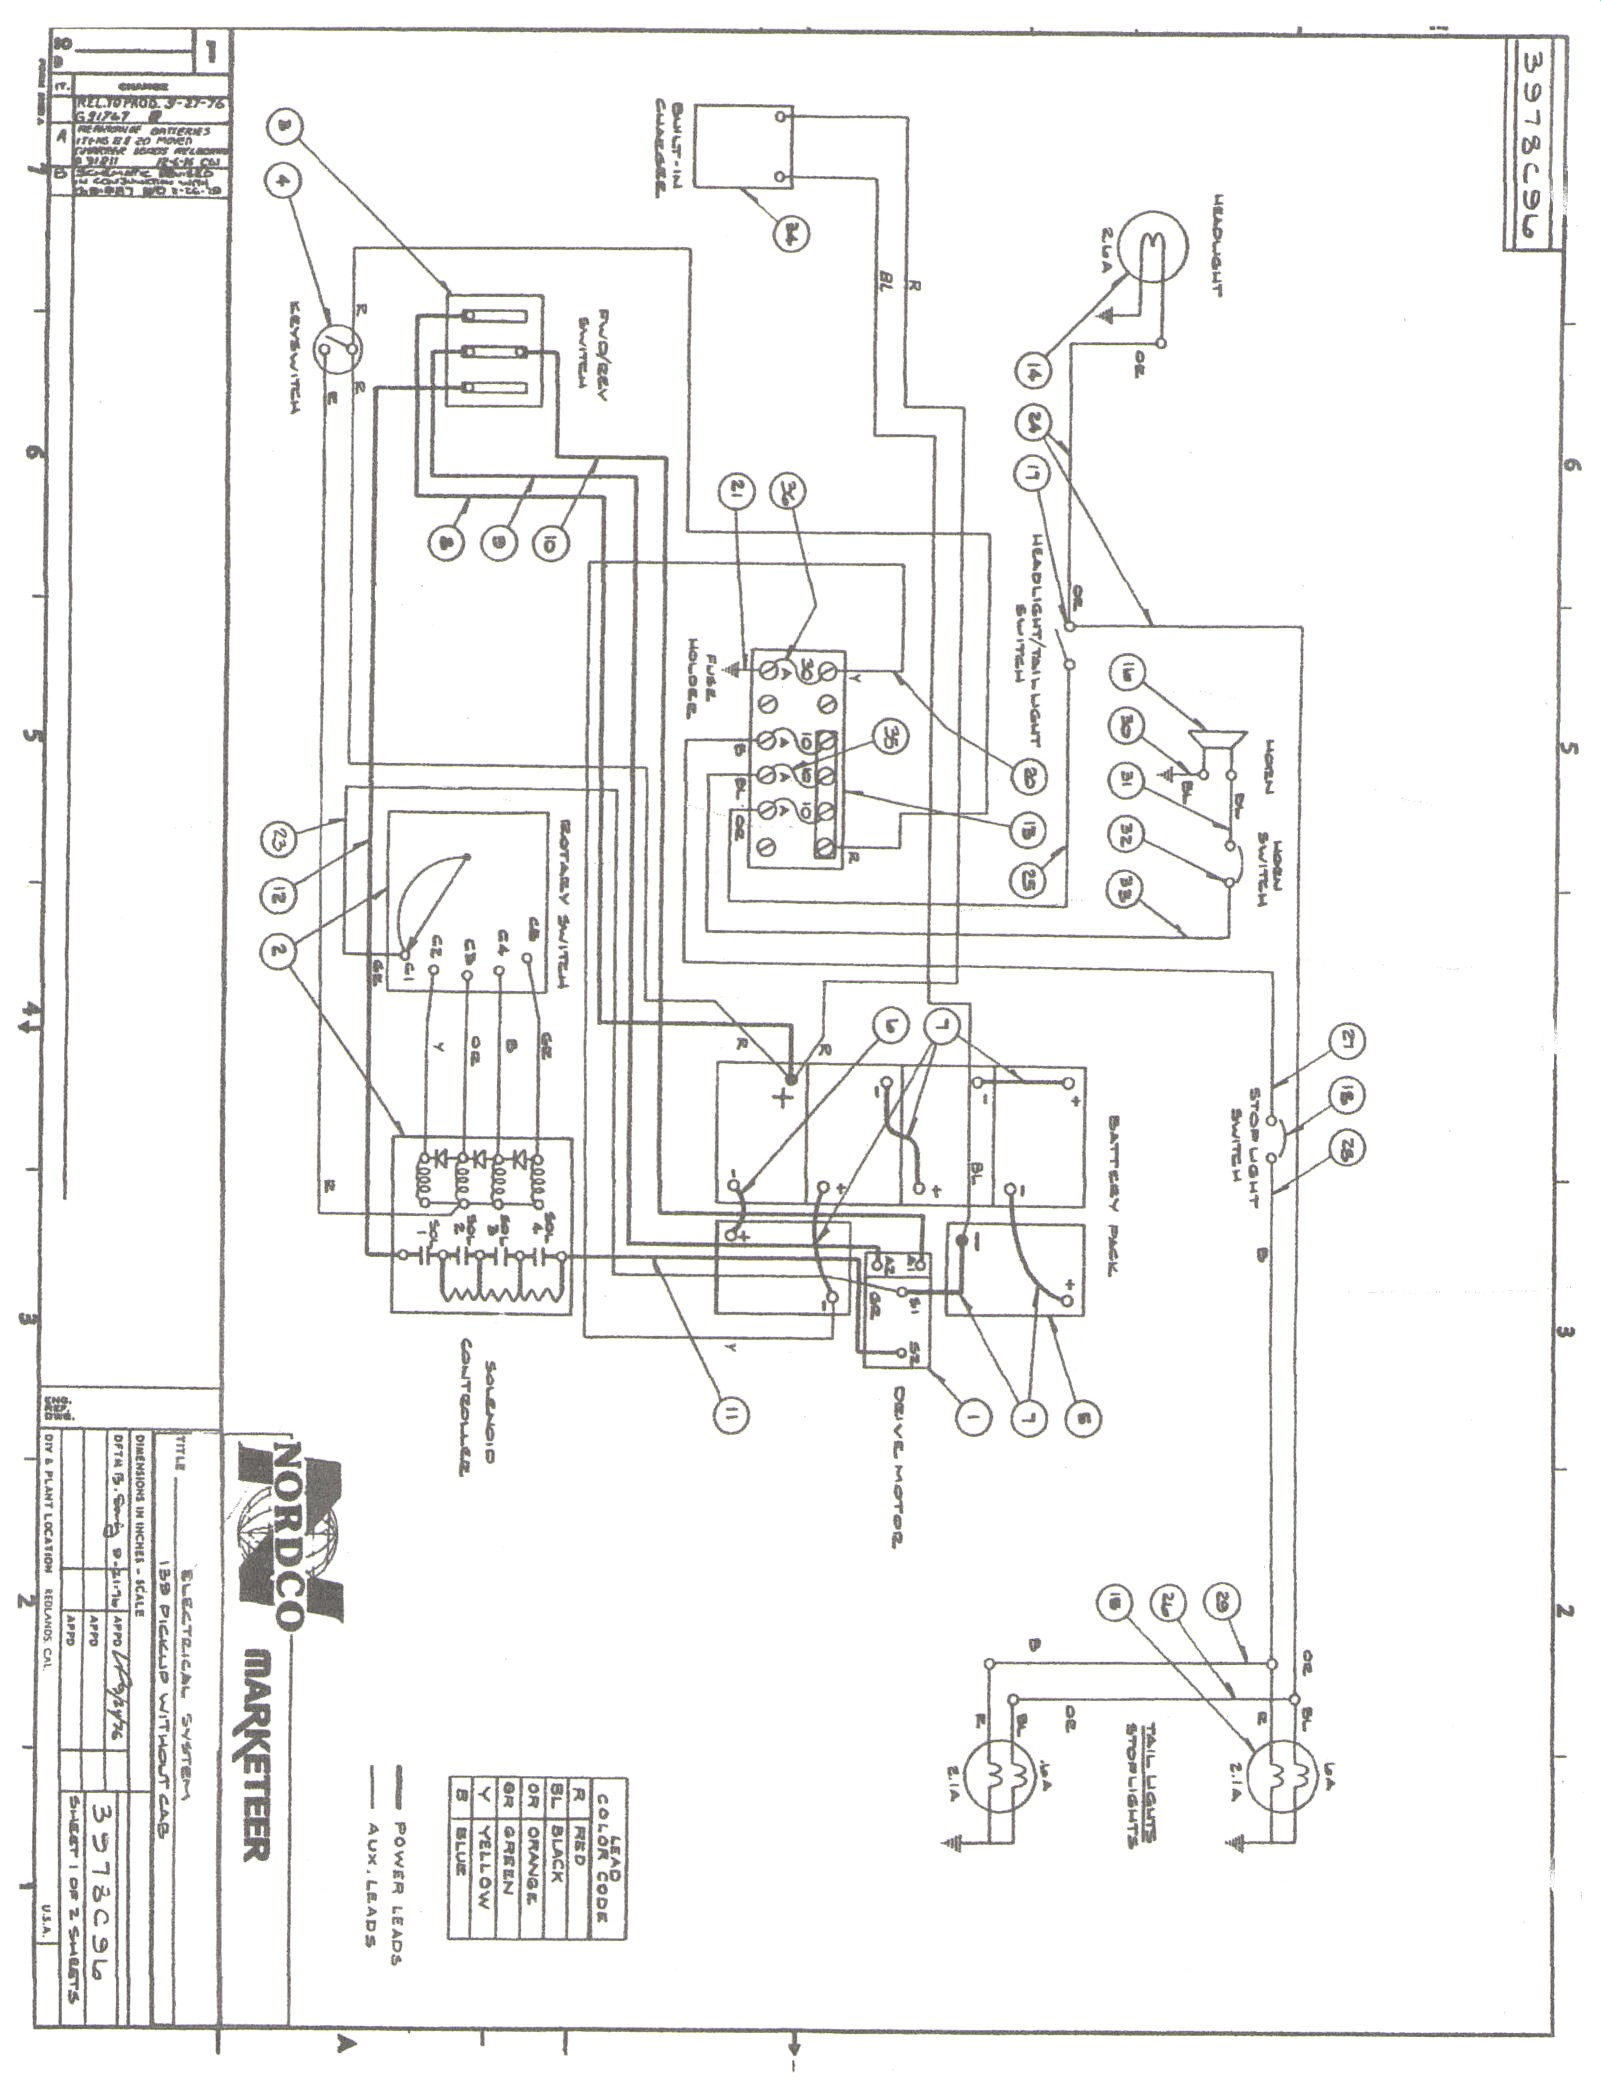 PU515_wiring_diagram for my ez go golf cart, need a wiring diagram readingrat net Ezgo TXT Gas Wiring Diagram at gsmx.co